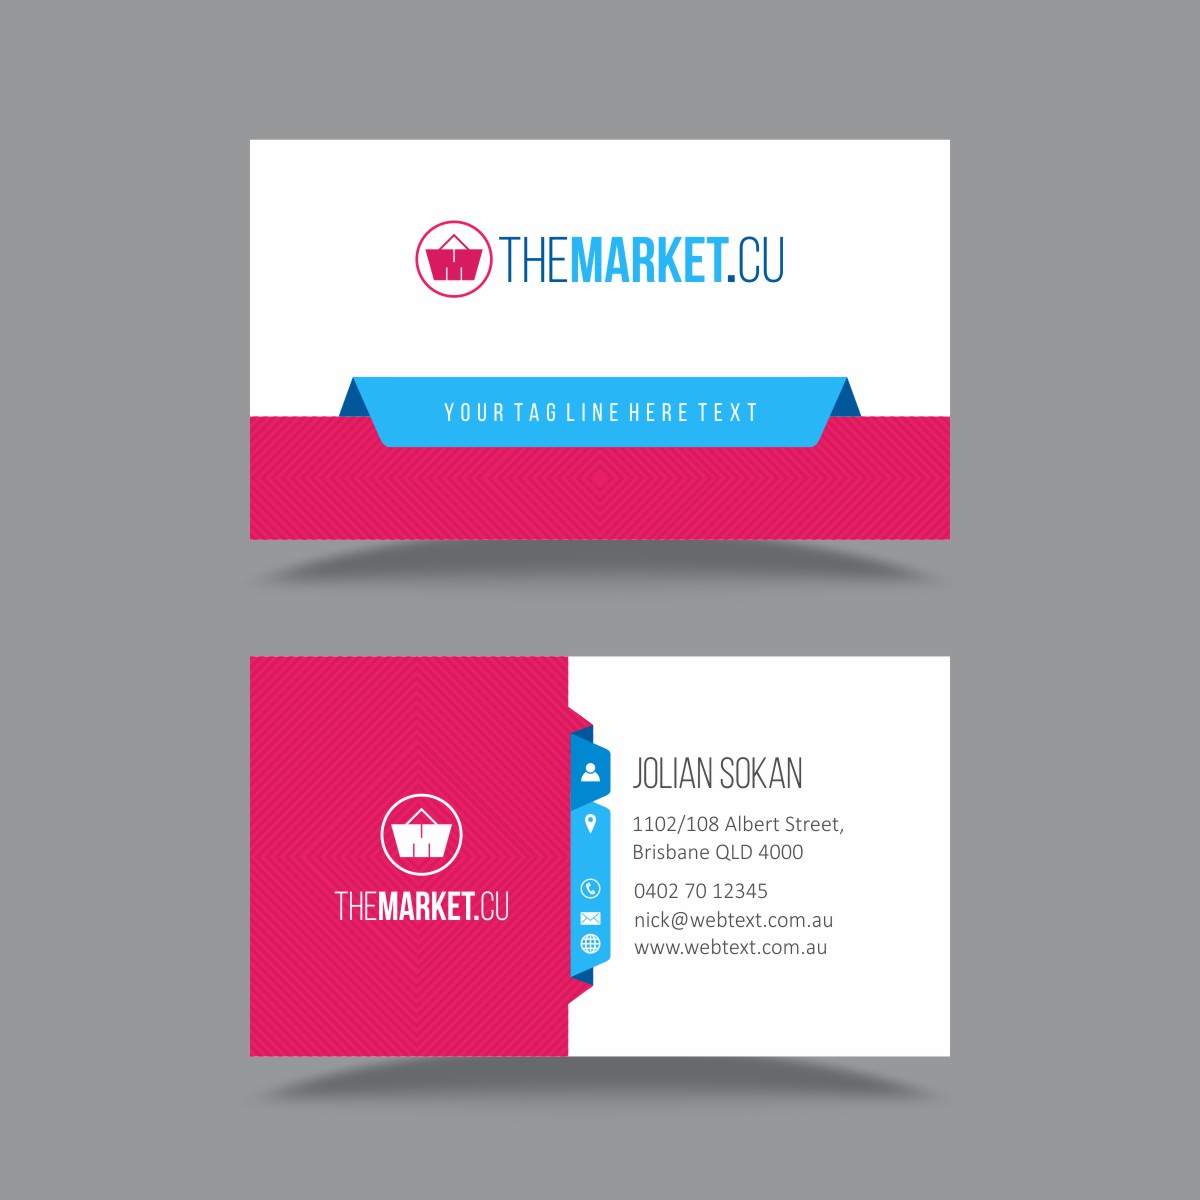 Ecommerce business card template online logo makers blog ecommerce business card template reheart Image collections